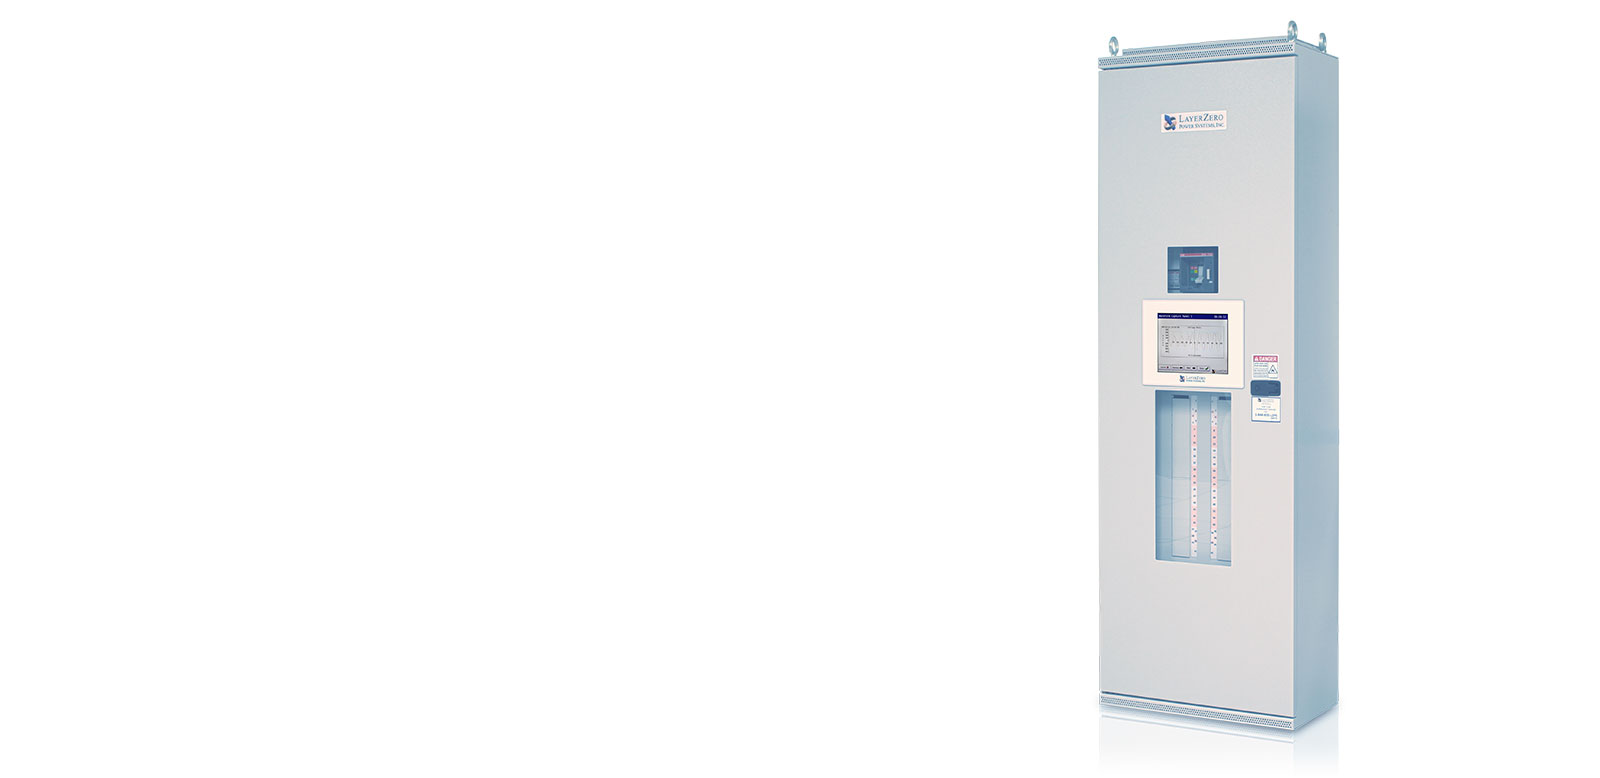 Series 70: eRPP-SL1 Wall-Mounted Remote Power Panel